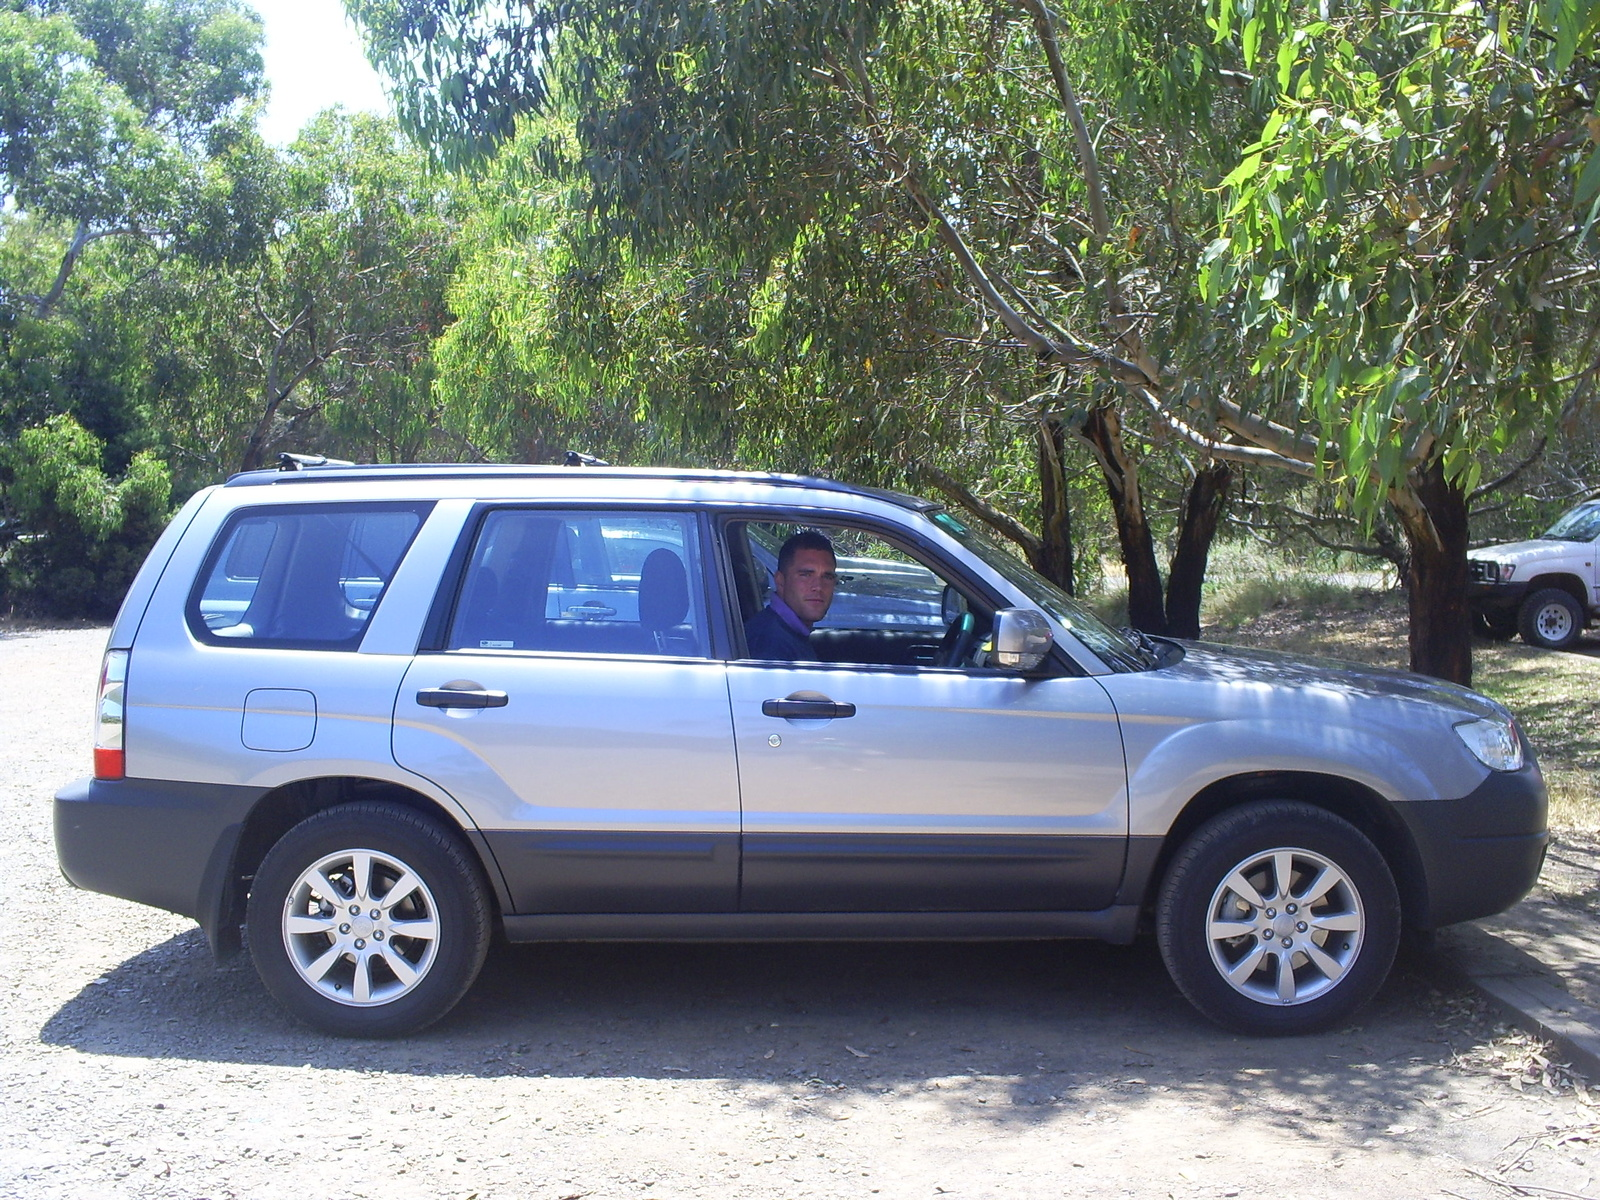 2007 Subaru Forester - Other Pictures - CarGurus